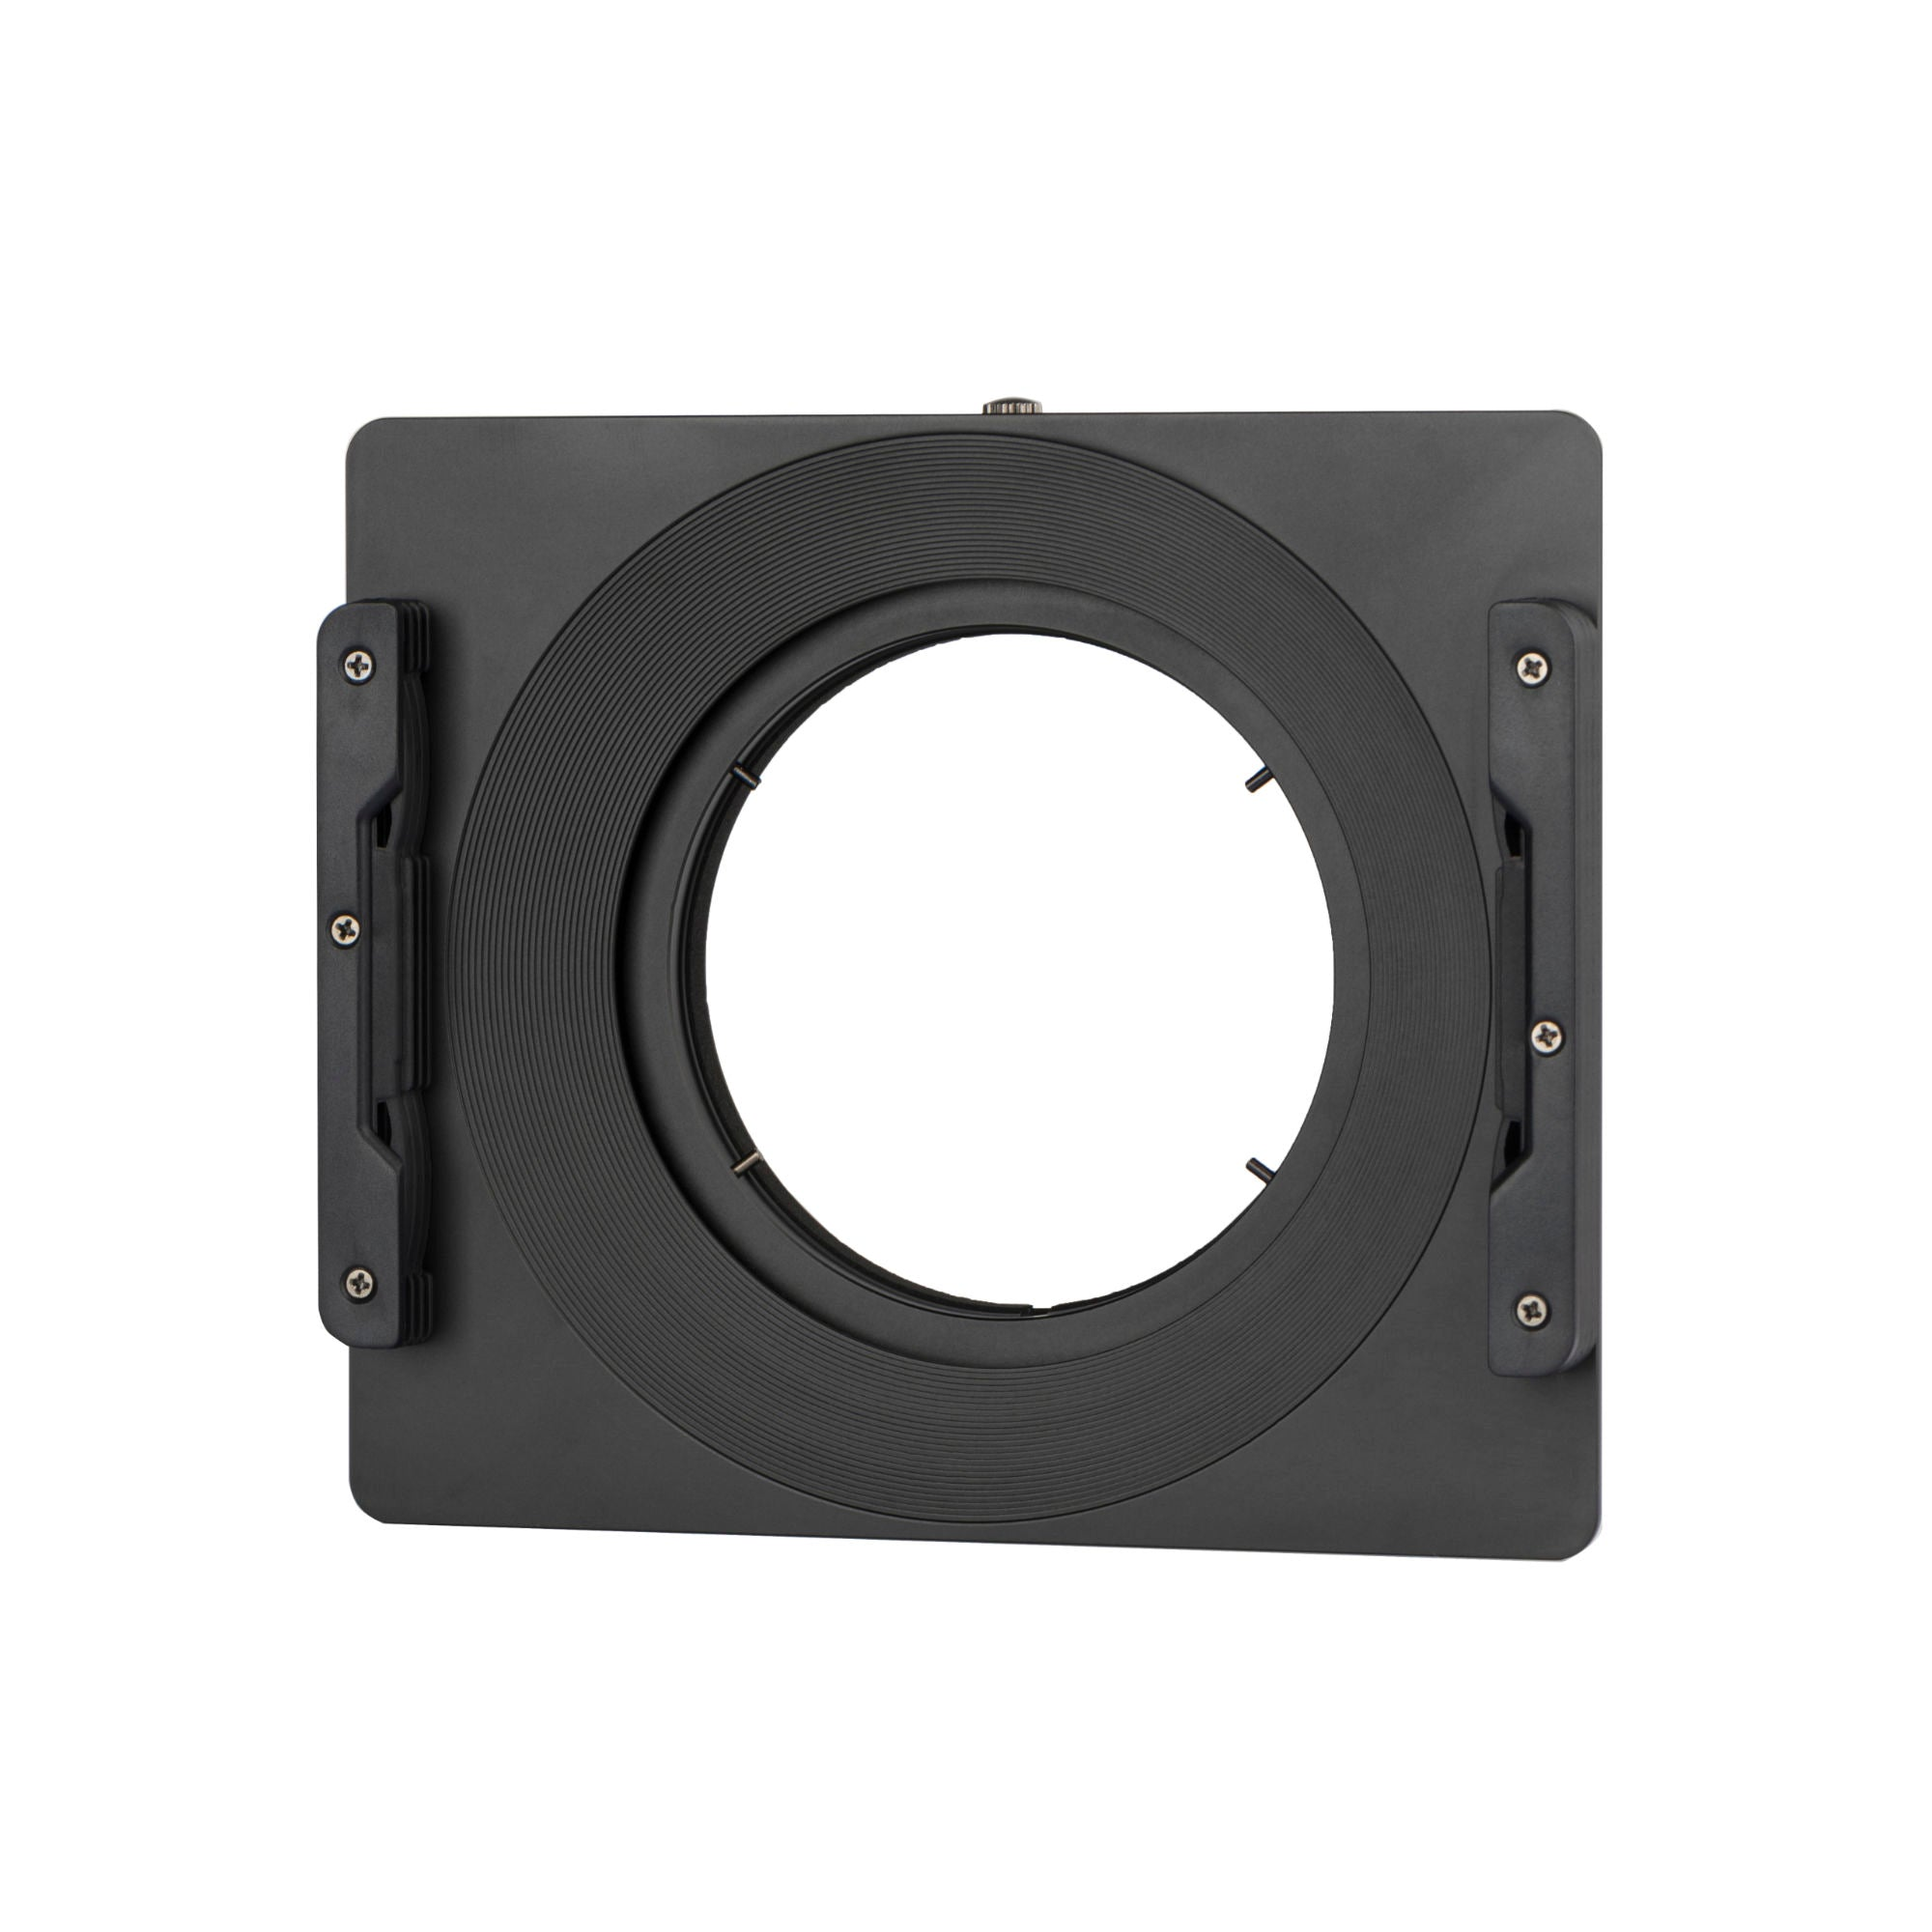 NiSi 150mm Filter Holder for Sigma 12-24mm F4 Art Lens